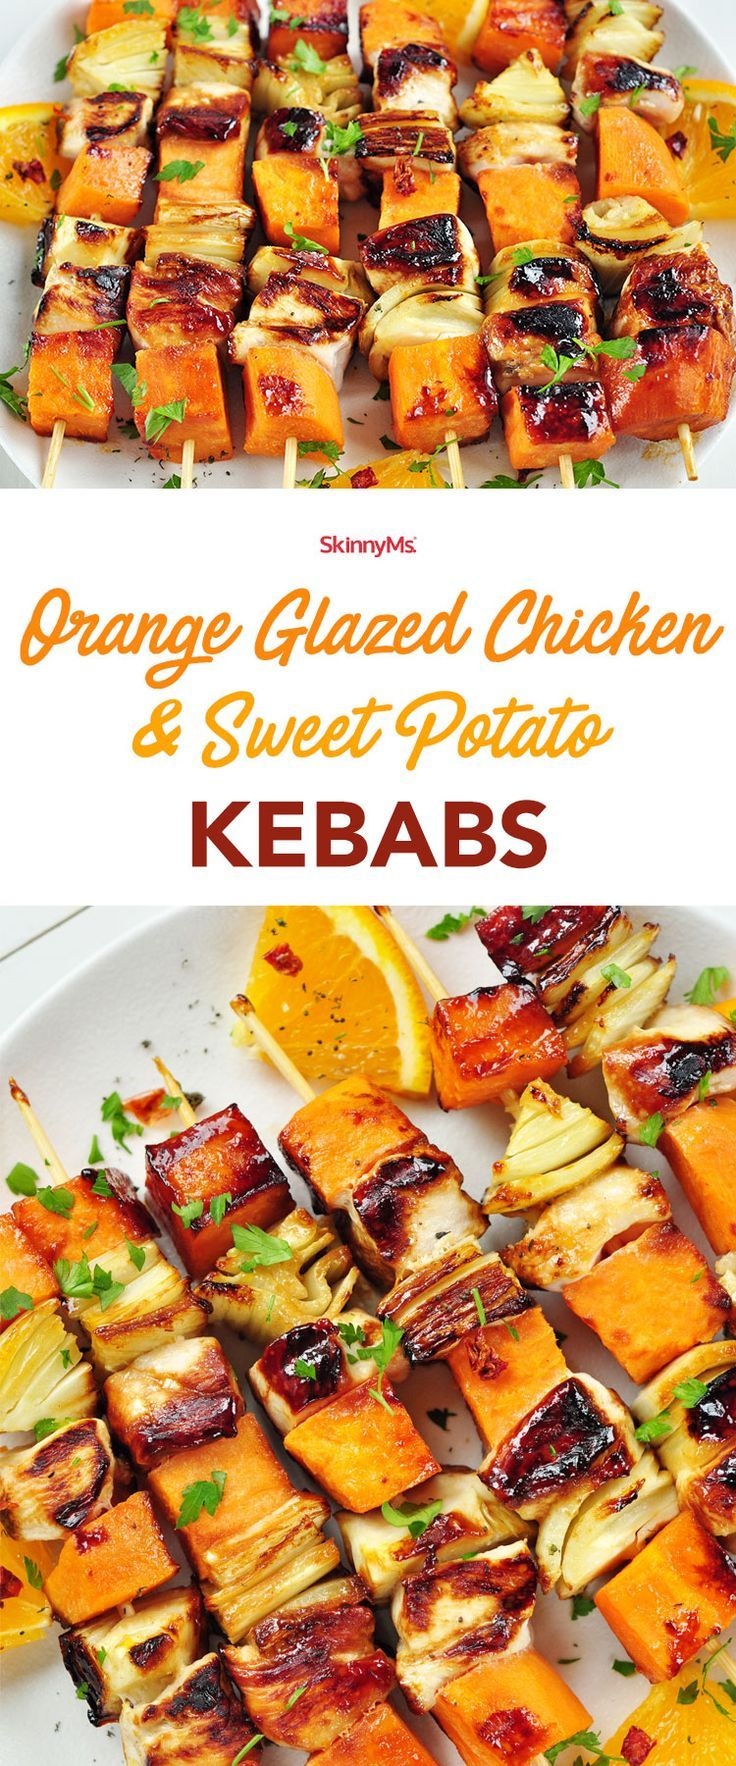 These Orange Glazed Chicken & Sweet Potato Kebabs make the perfect low-calorie dinner recipe! | easy recipes | low calories recipes | chicken recipes | easy dinner recipes